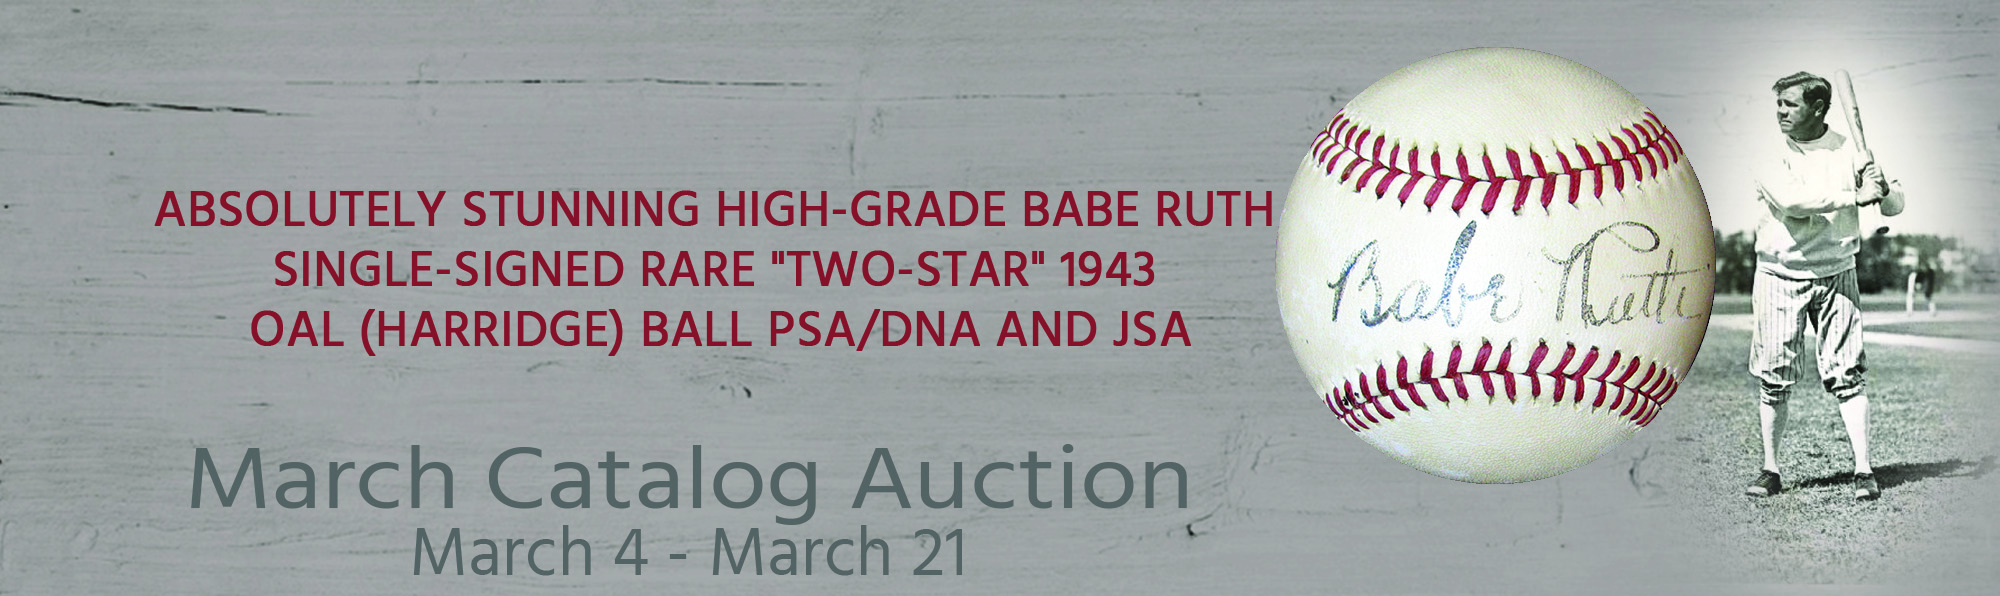 Absolutely Stunning High-Grade Babe Ruth Single-Signed Rare